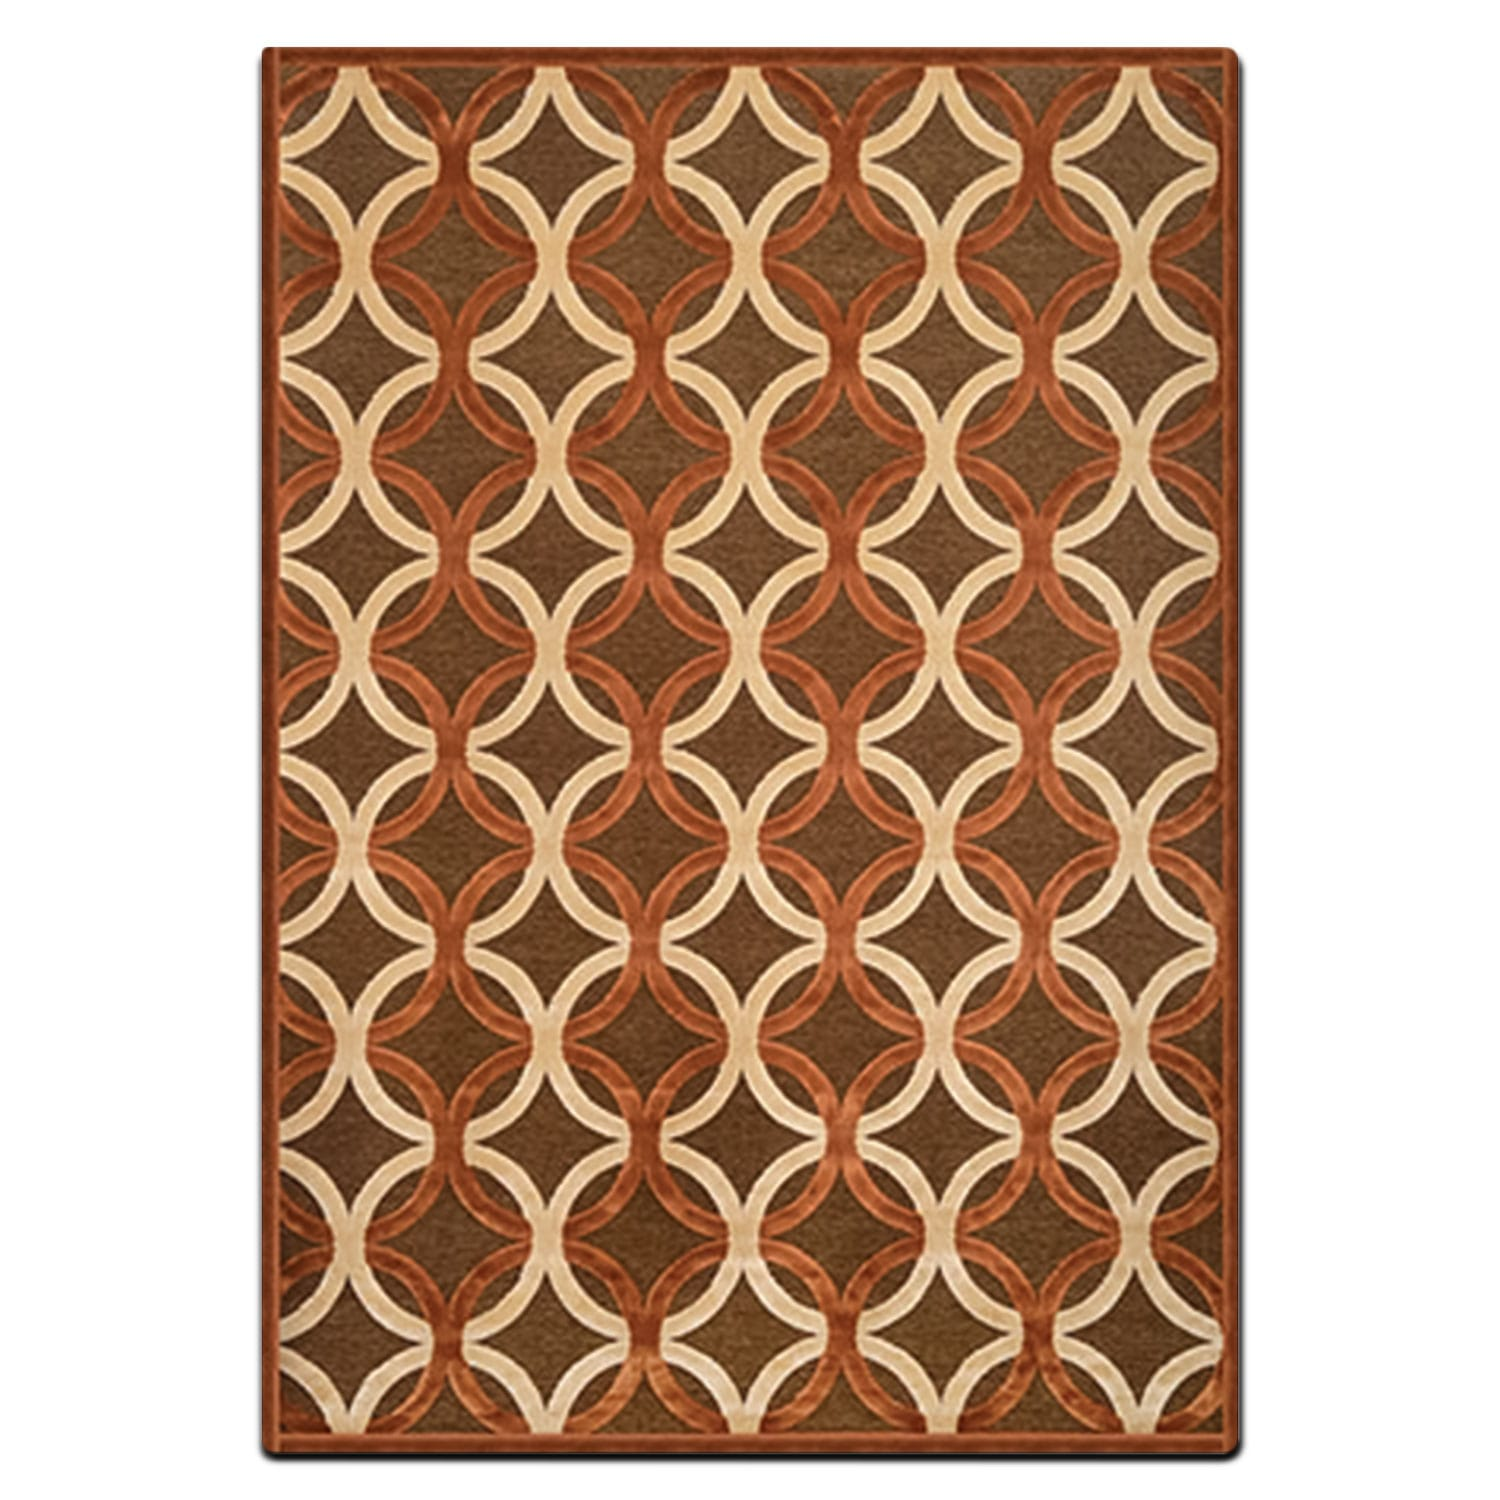 Rugs - Napa 8' x 10' Area Rug - Rust and Ivory